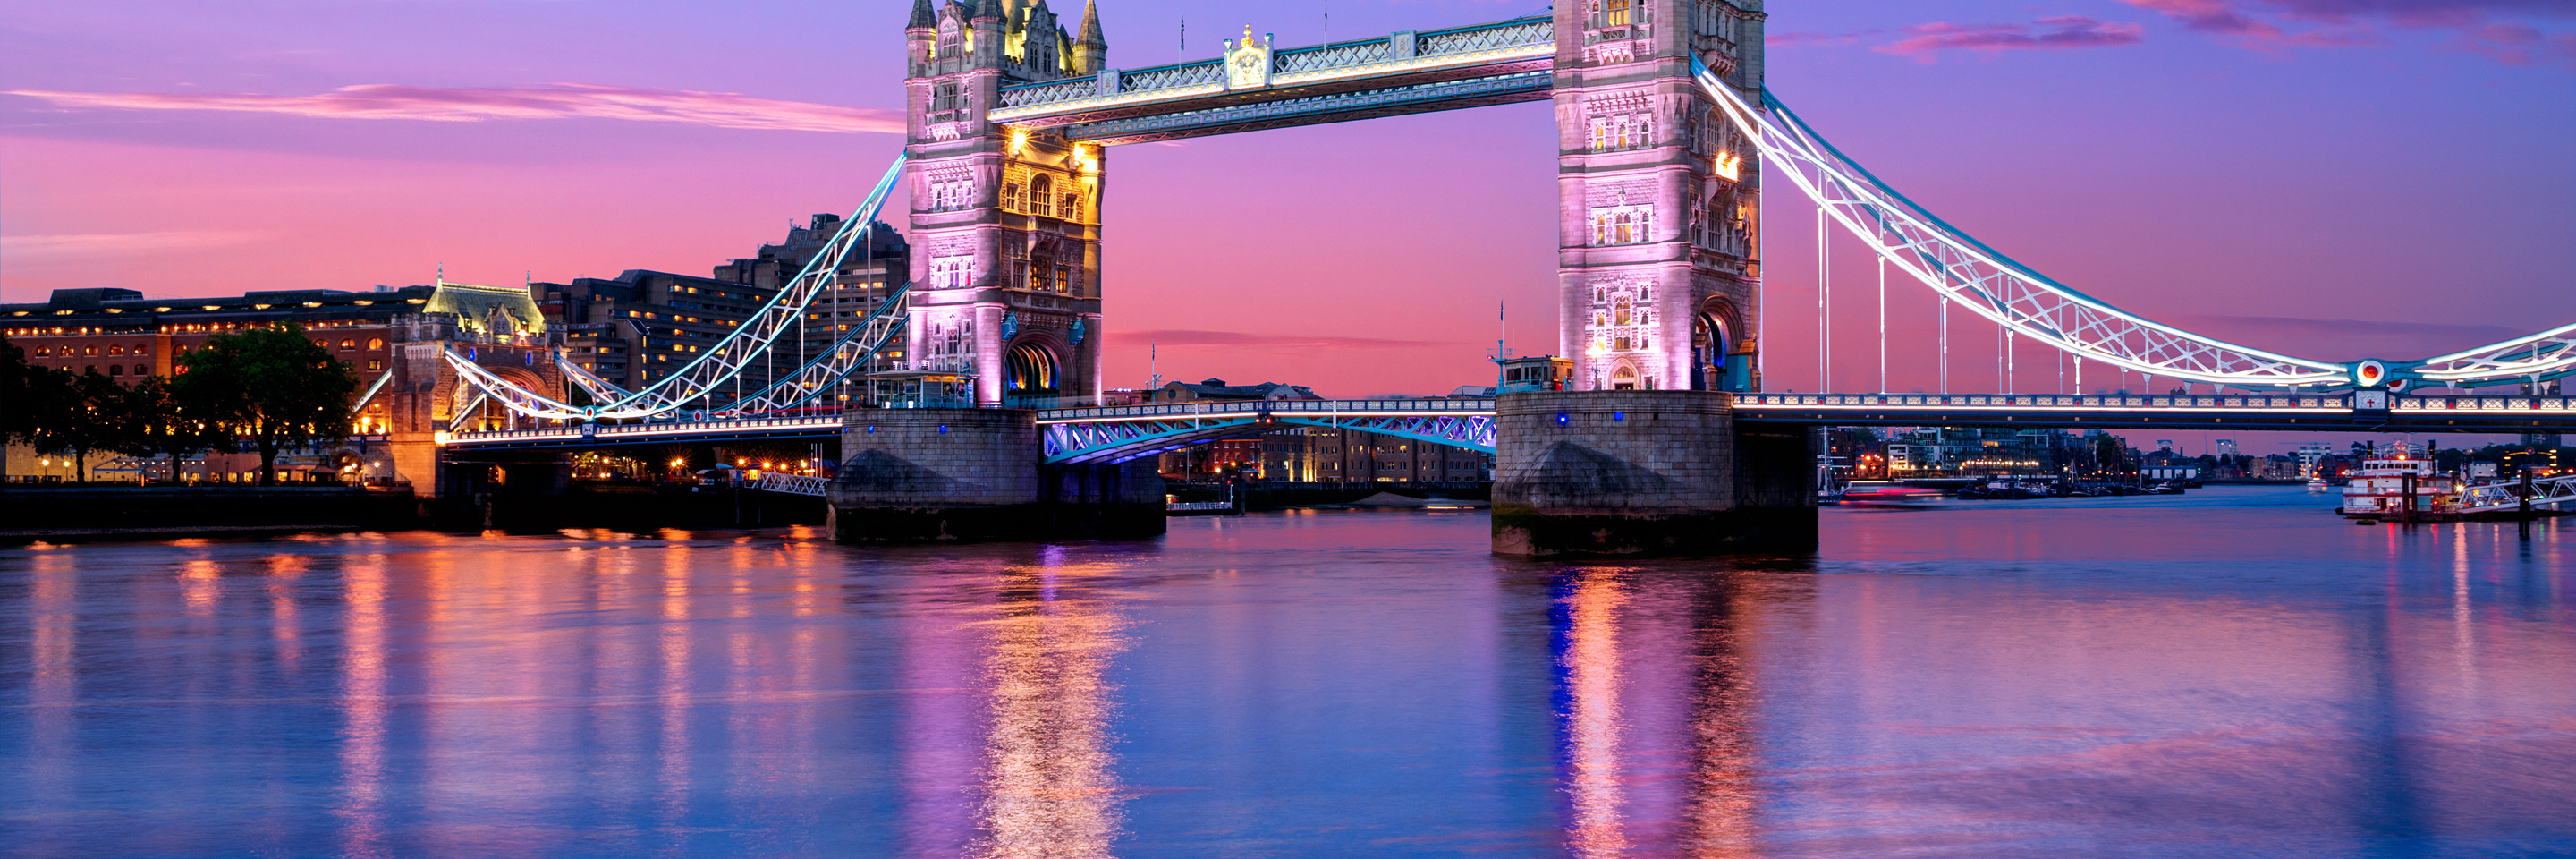 A Culinary Experience in Grand France with 2 Nights in Nice  & 3 Nights in London (Northbound)